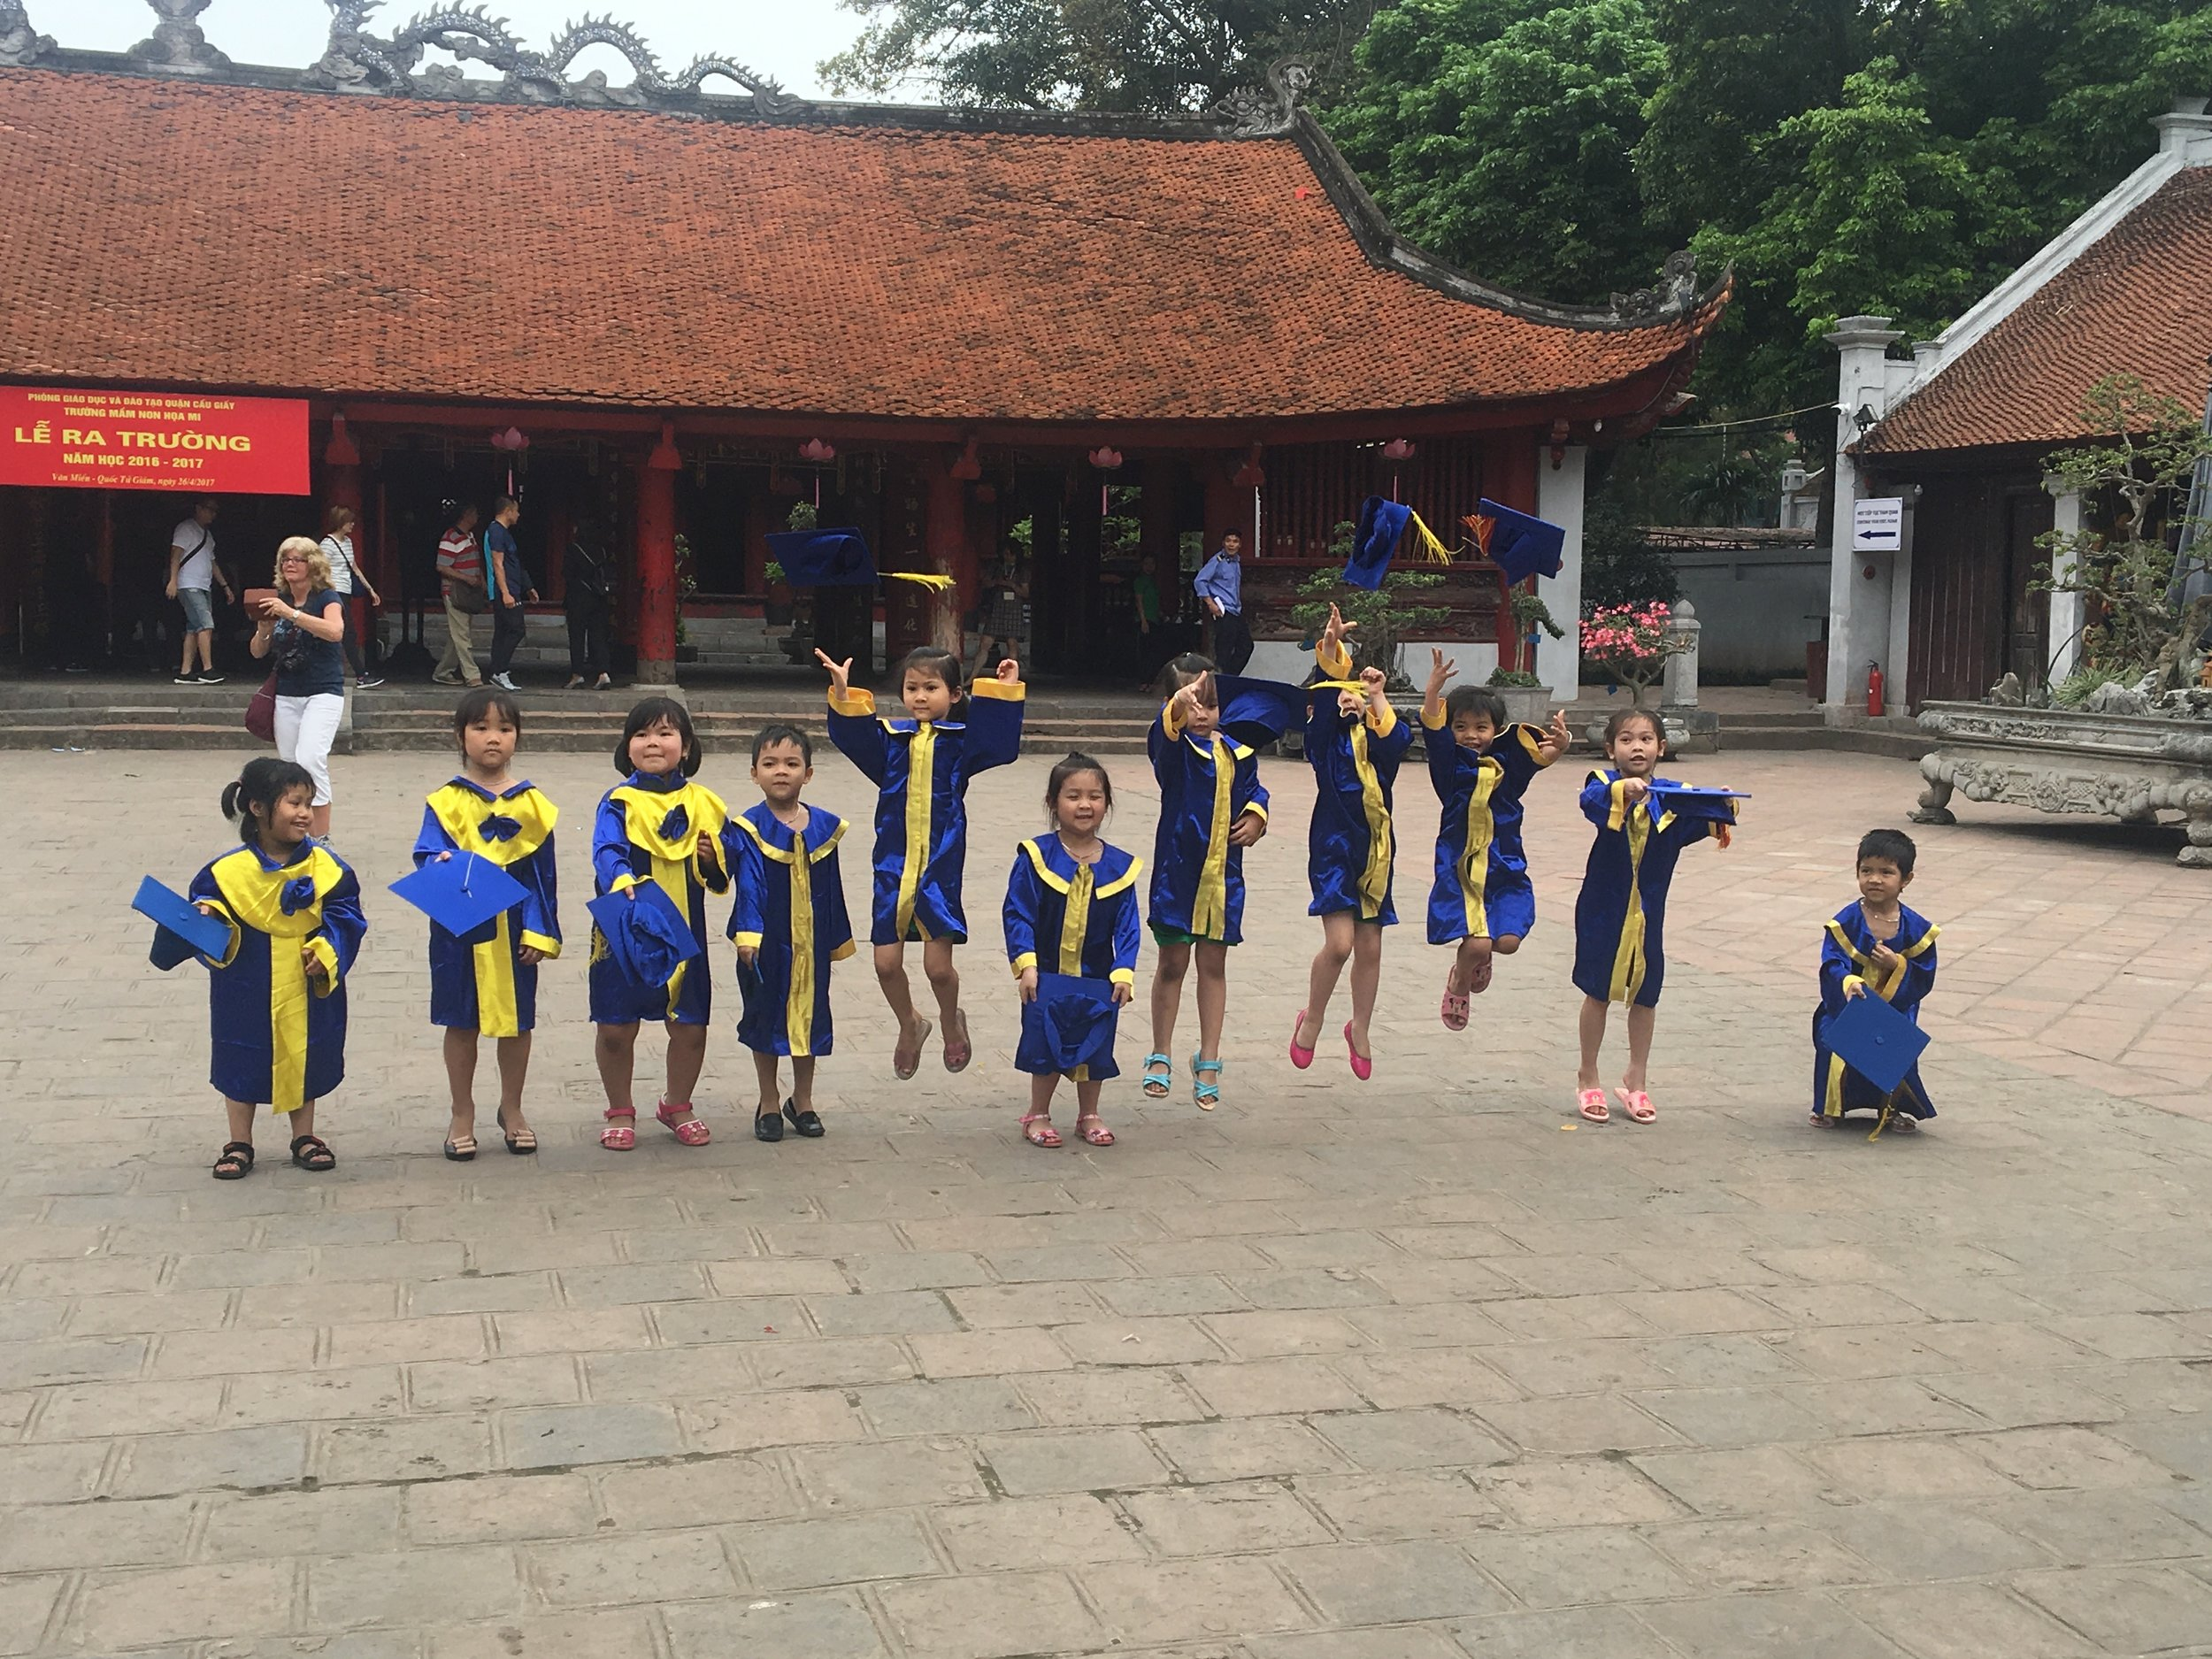 Lots of happiness at the Temple of Literature, Vietnam's oldest university in Hanoi